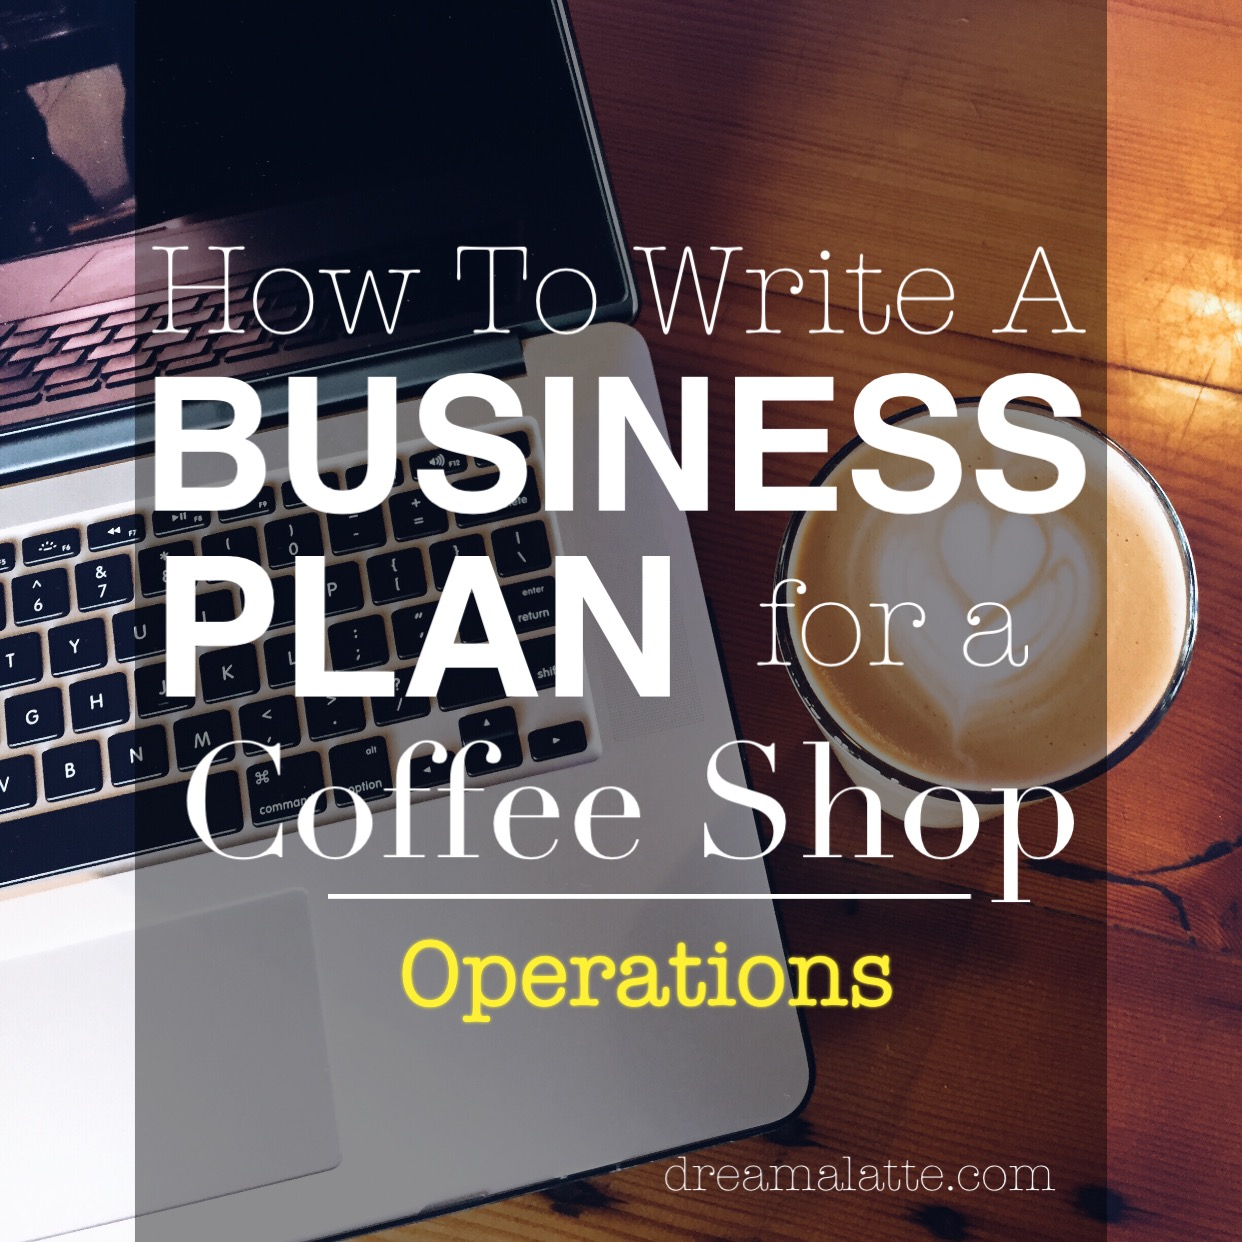 Business plan operations section